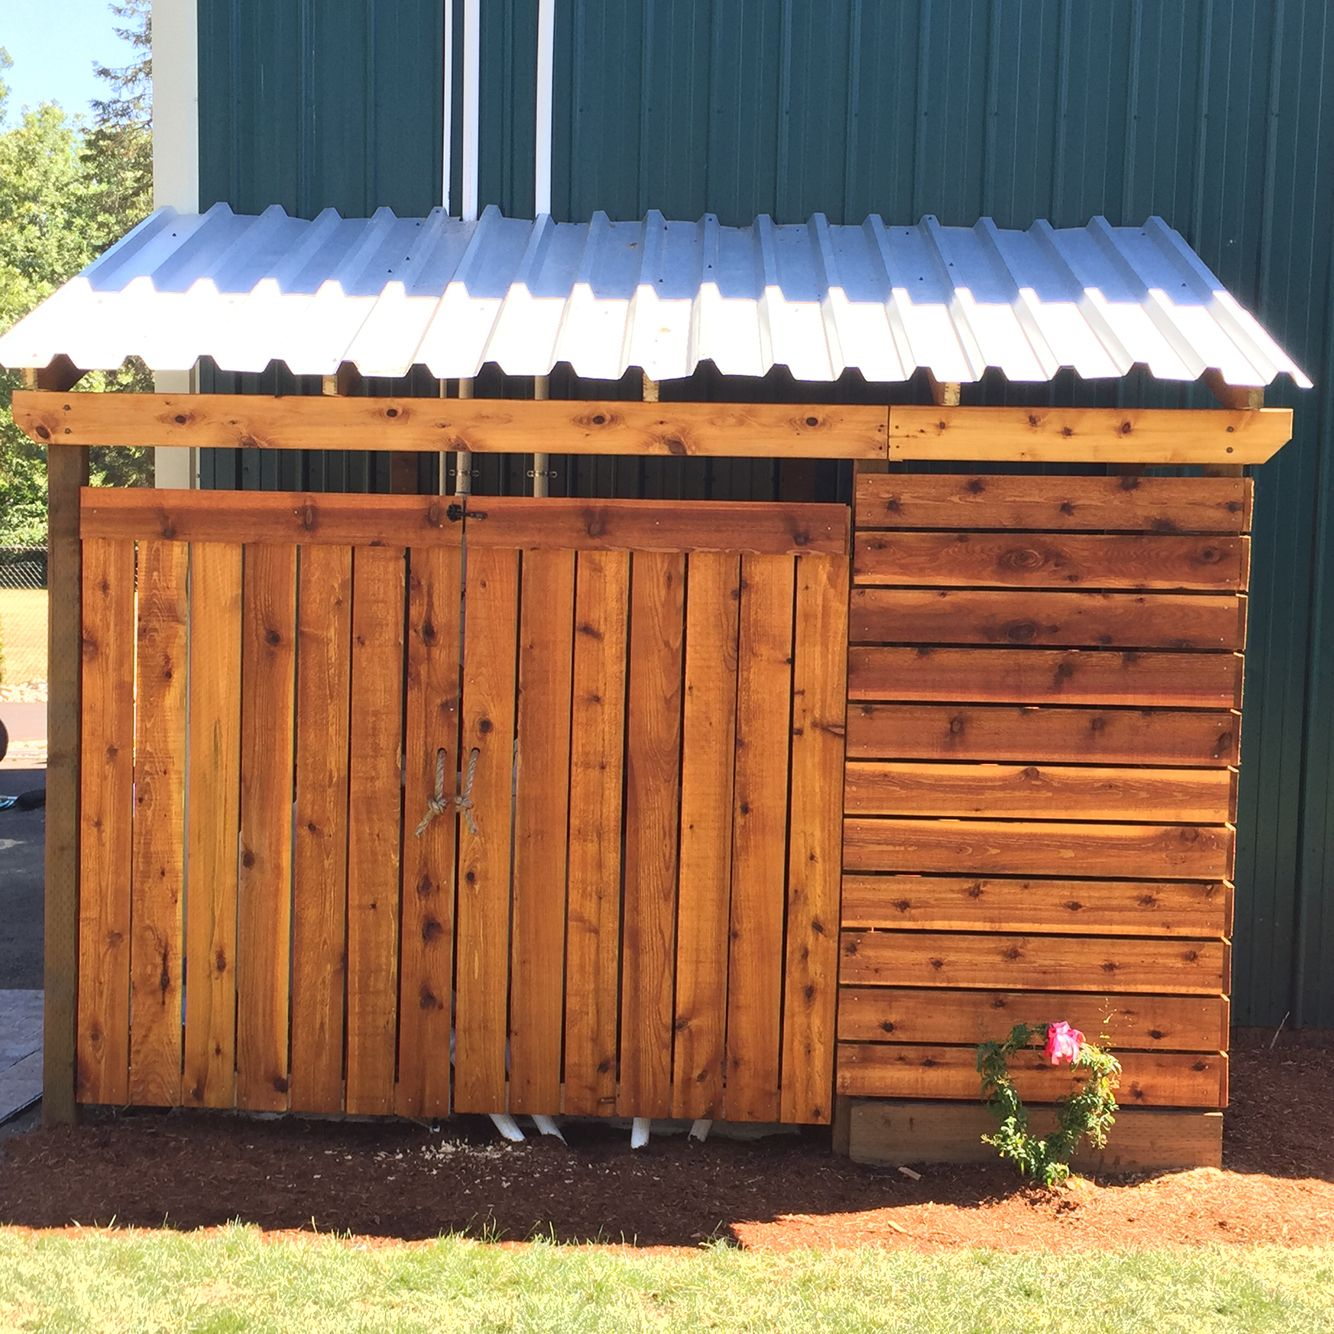 A Nice Way To Hide Your Swimming Pool Pumps Garbage Cans Or Yard Furniture A Cedar Outbuilding